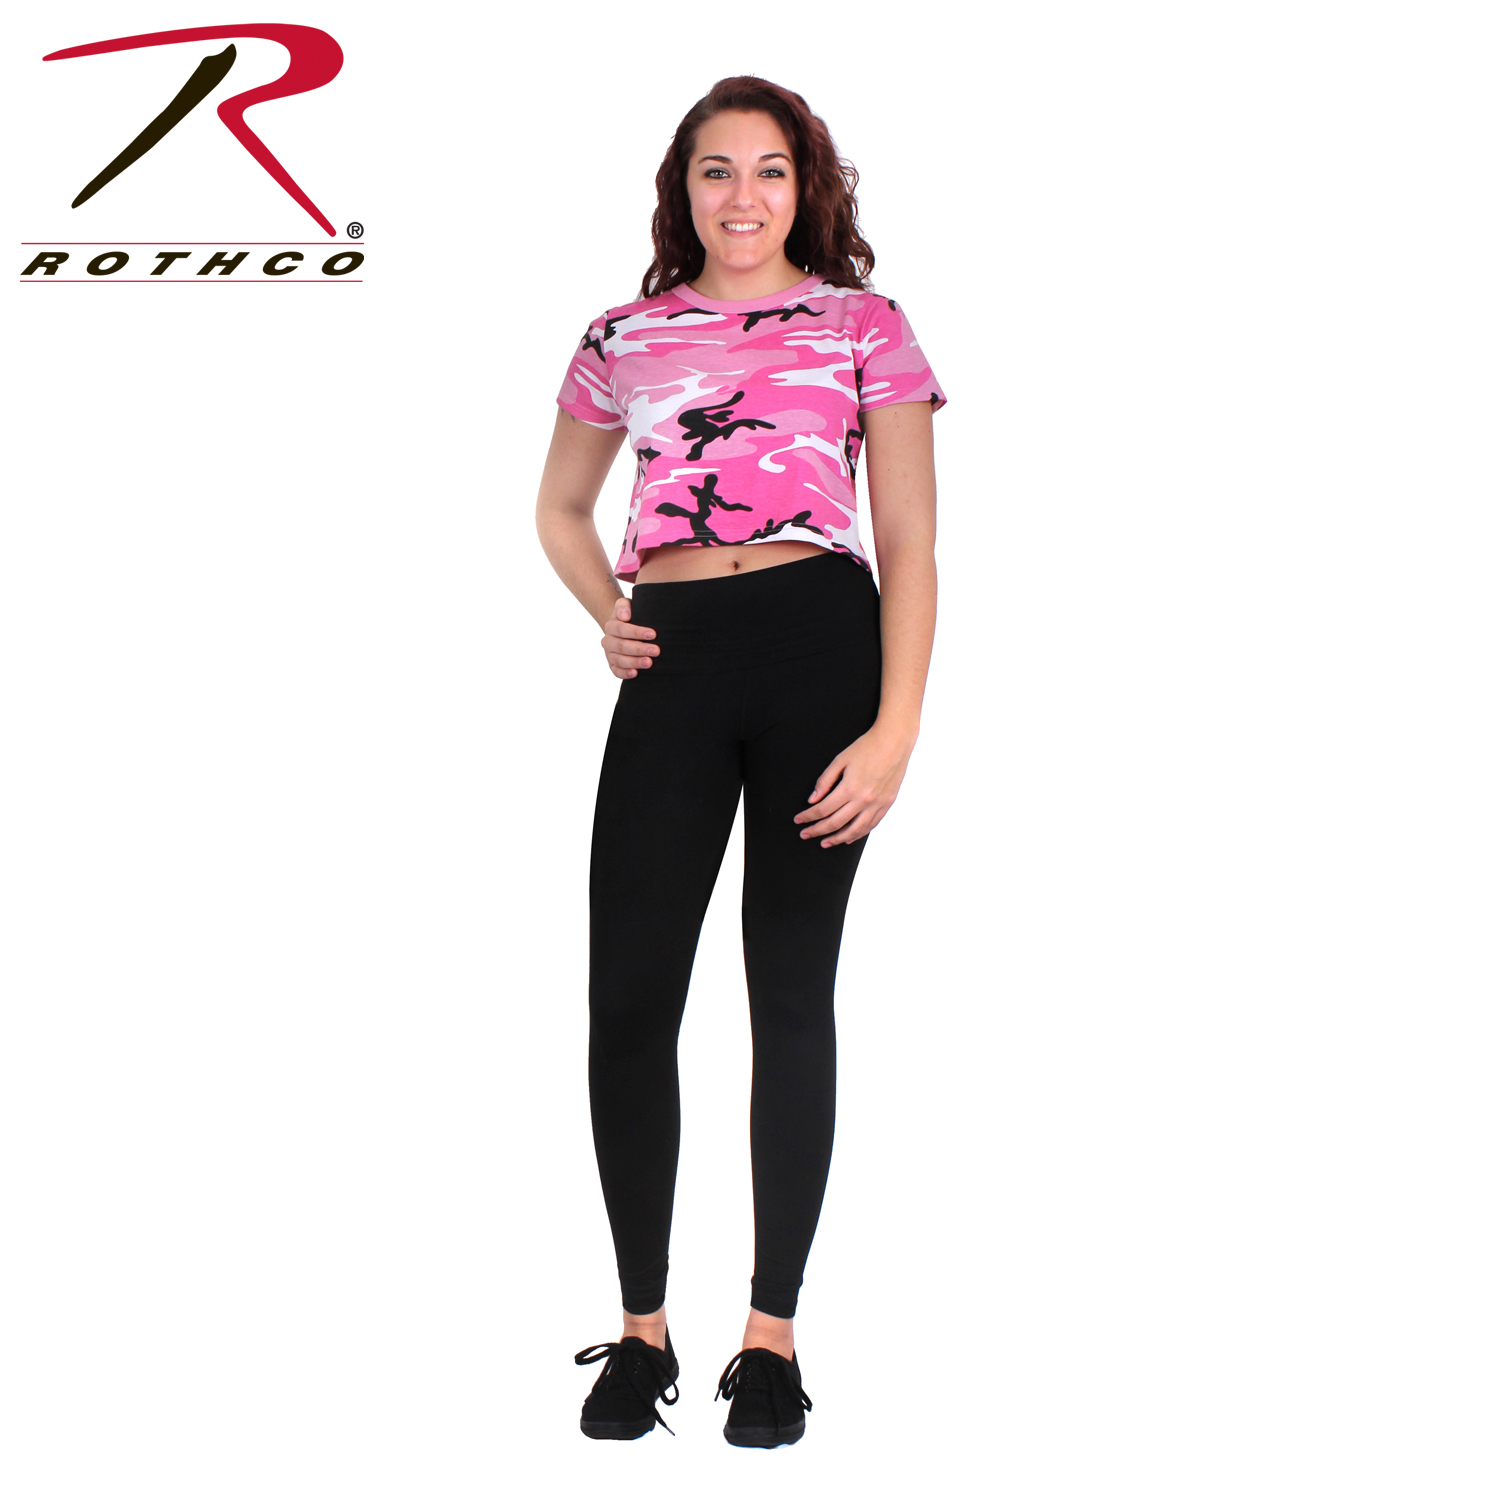 a2ec4e04537 ... camouflage crop top. Loading zoom